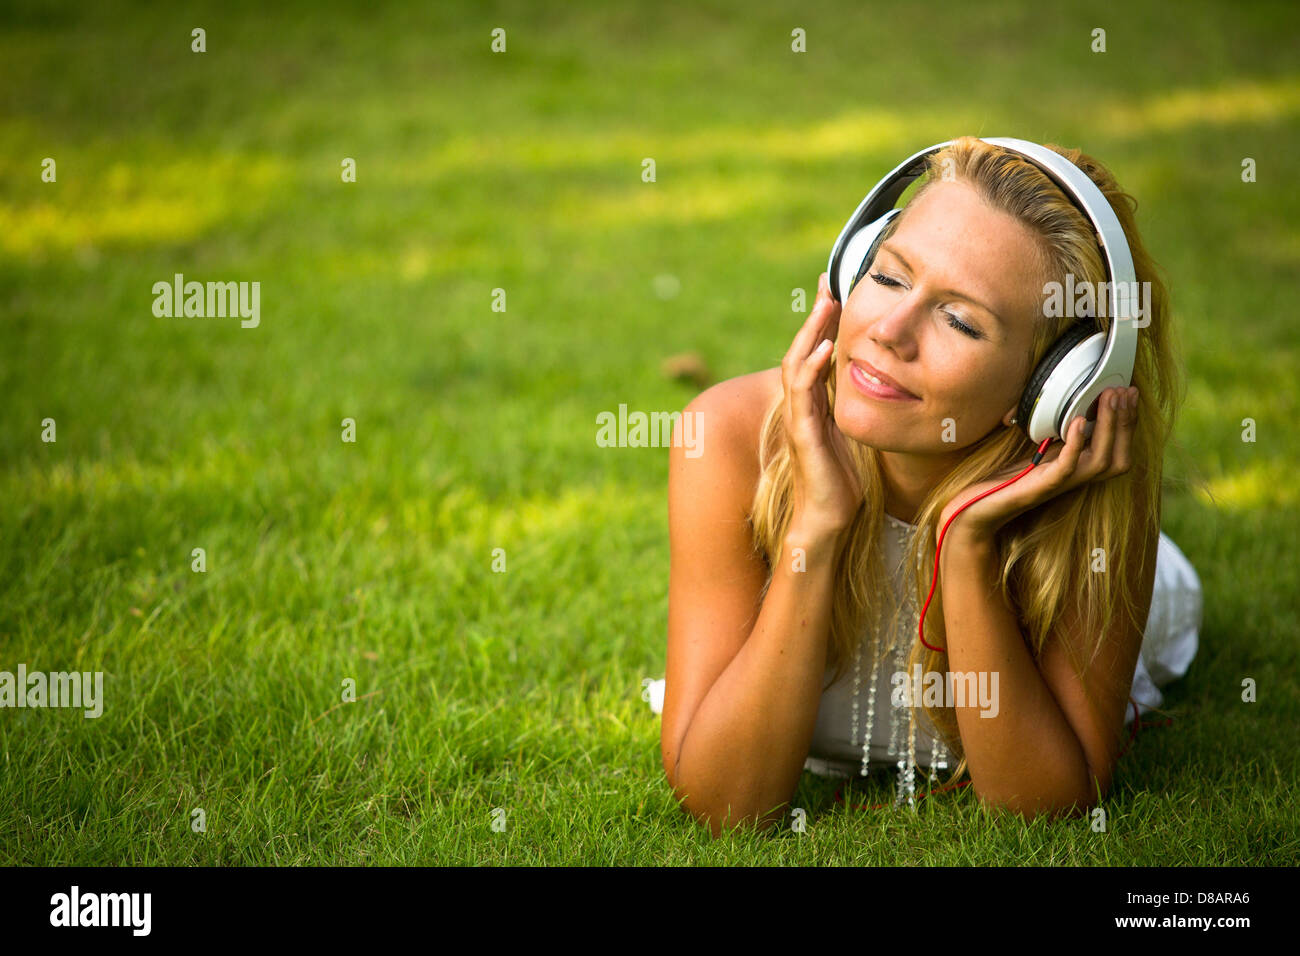 Happiness girl with headphones enjoying nature and music at sunny day. - Stock Image